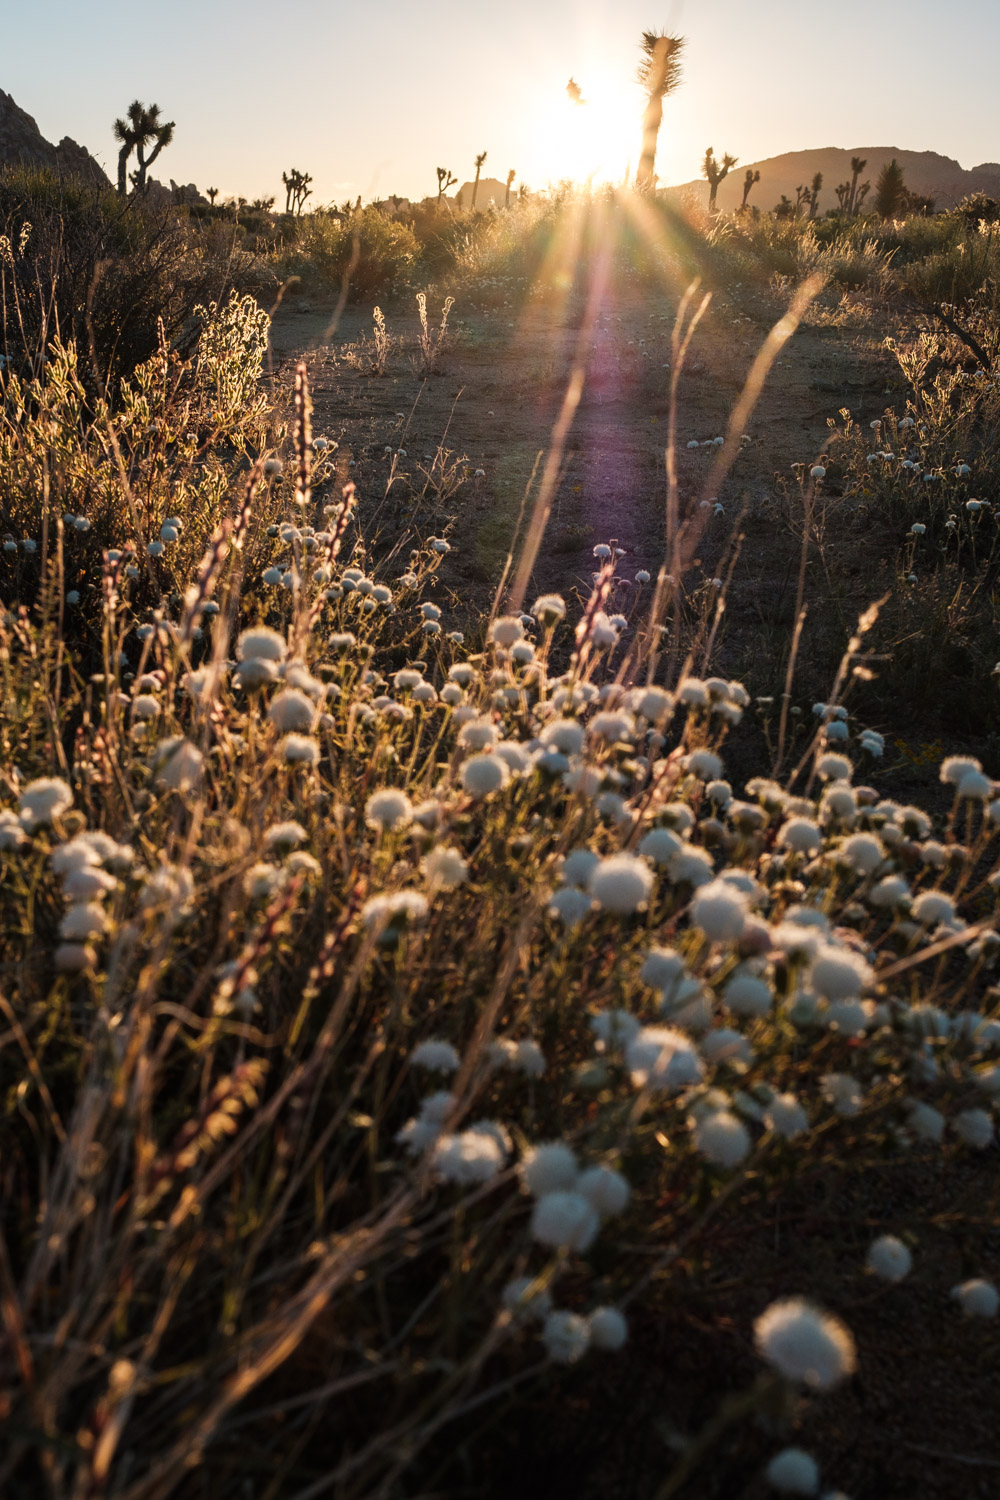 White, little flowers shinning in gold during sunset